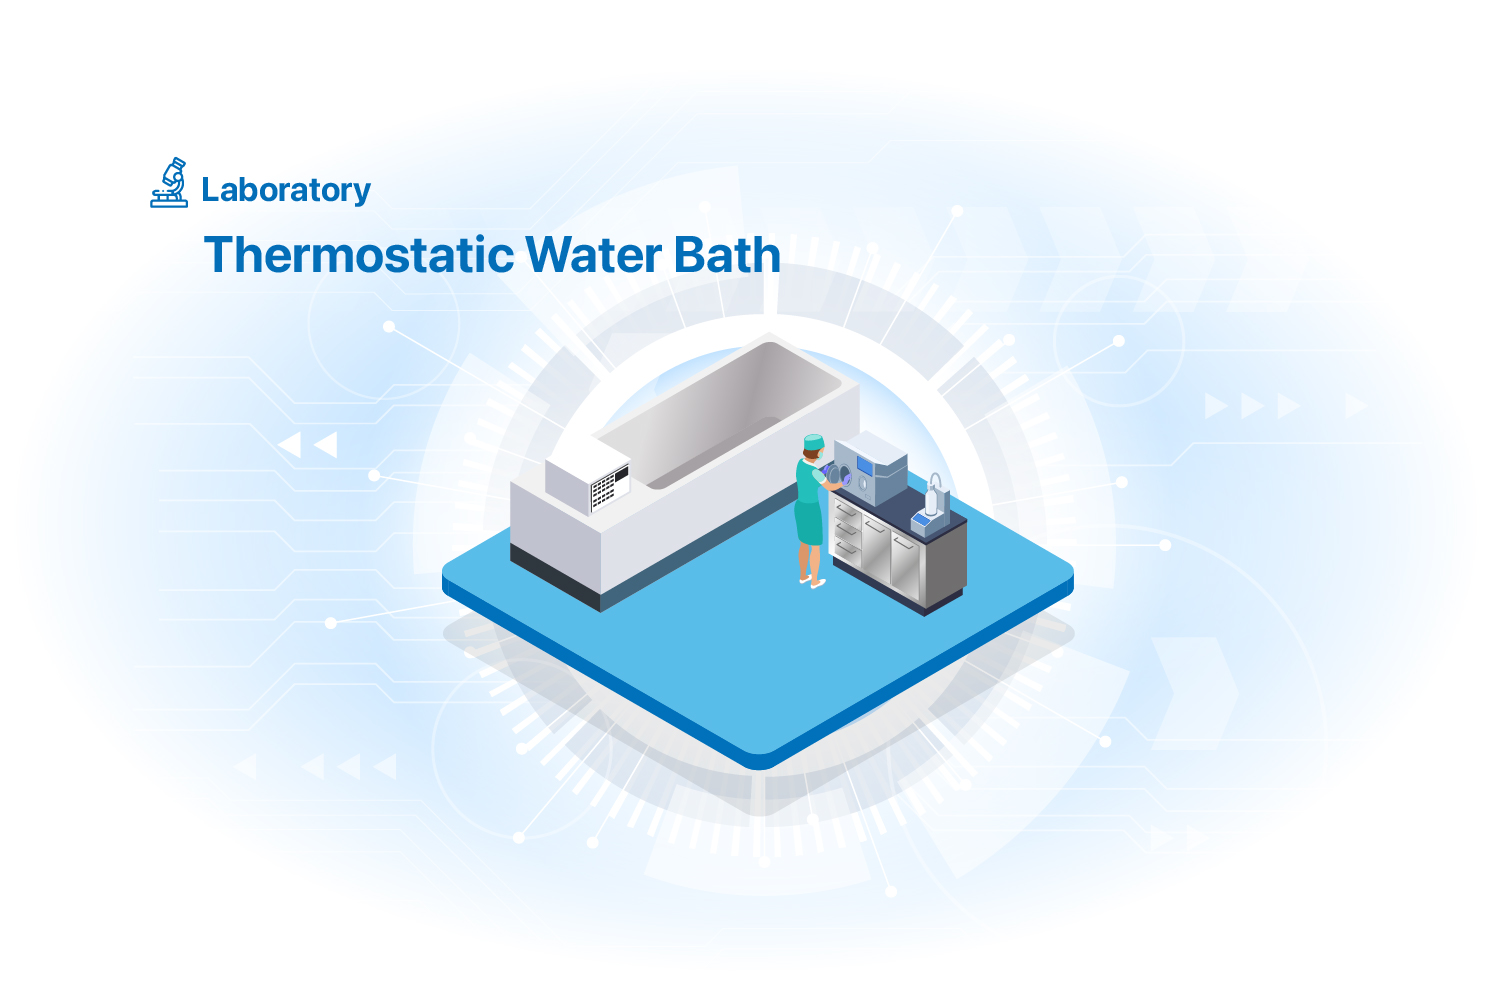 proimages/PIC/trade_show/BC_E-BOOTH/05_Laboratory/5.1_Lab_Thermostatic_Water_Bath.jpg